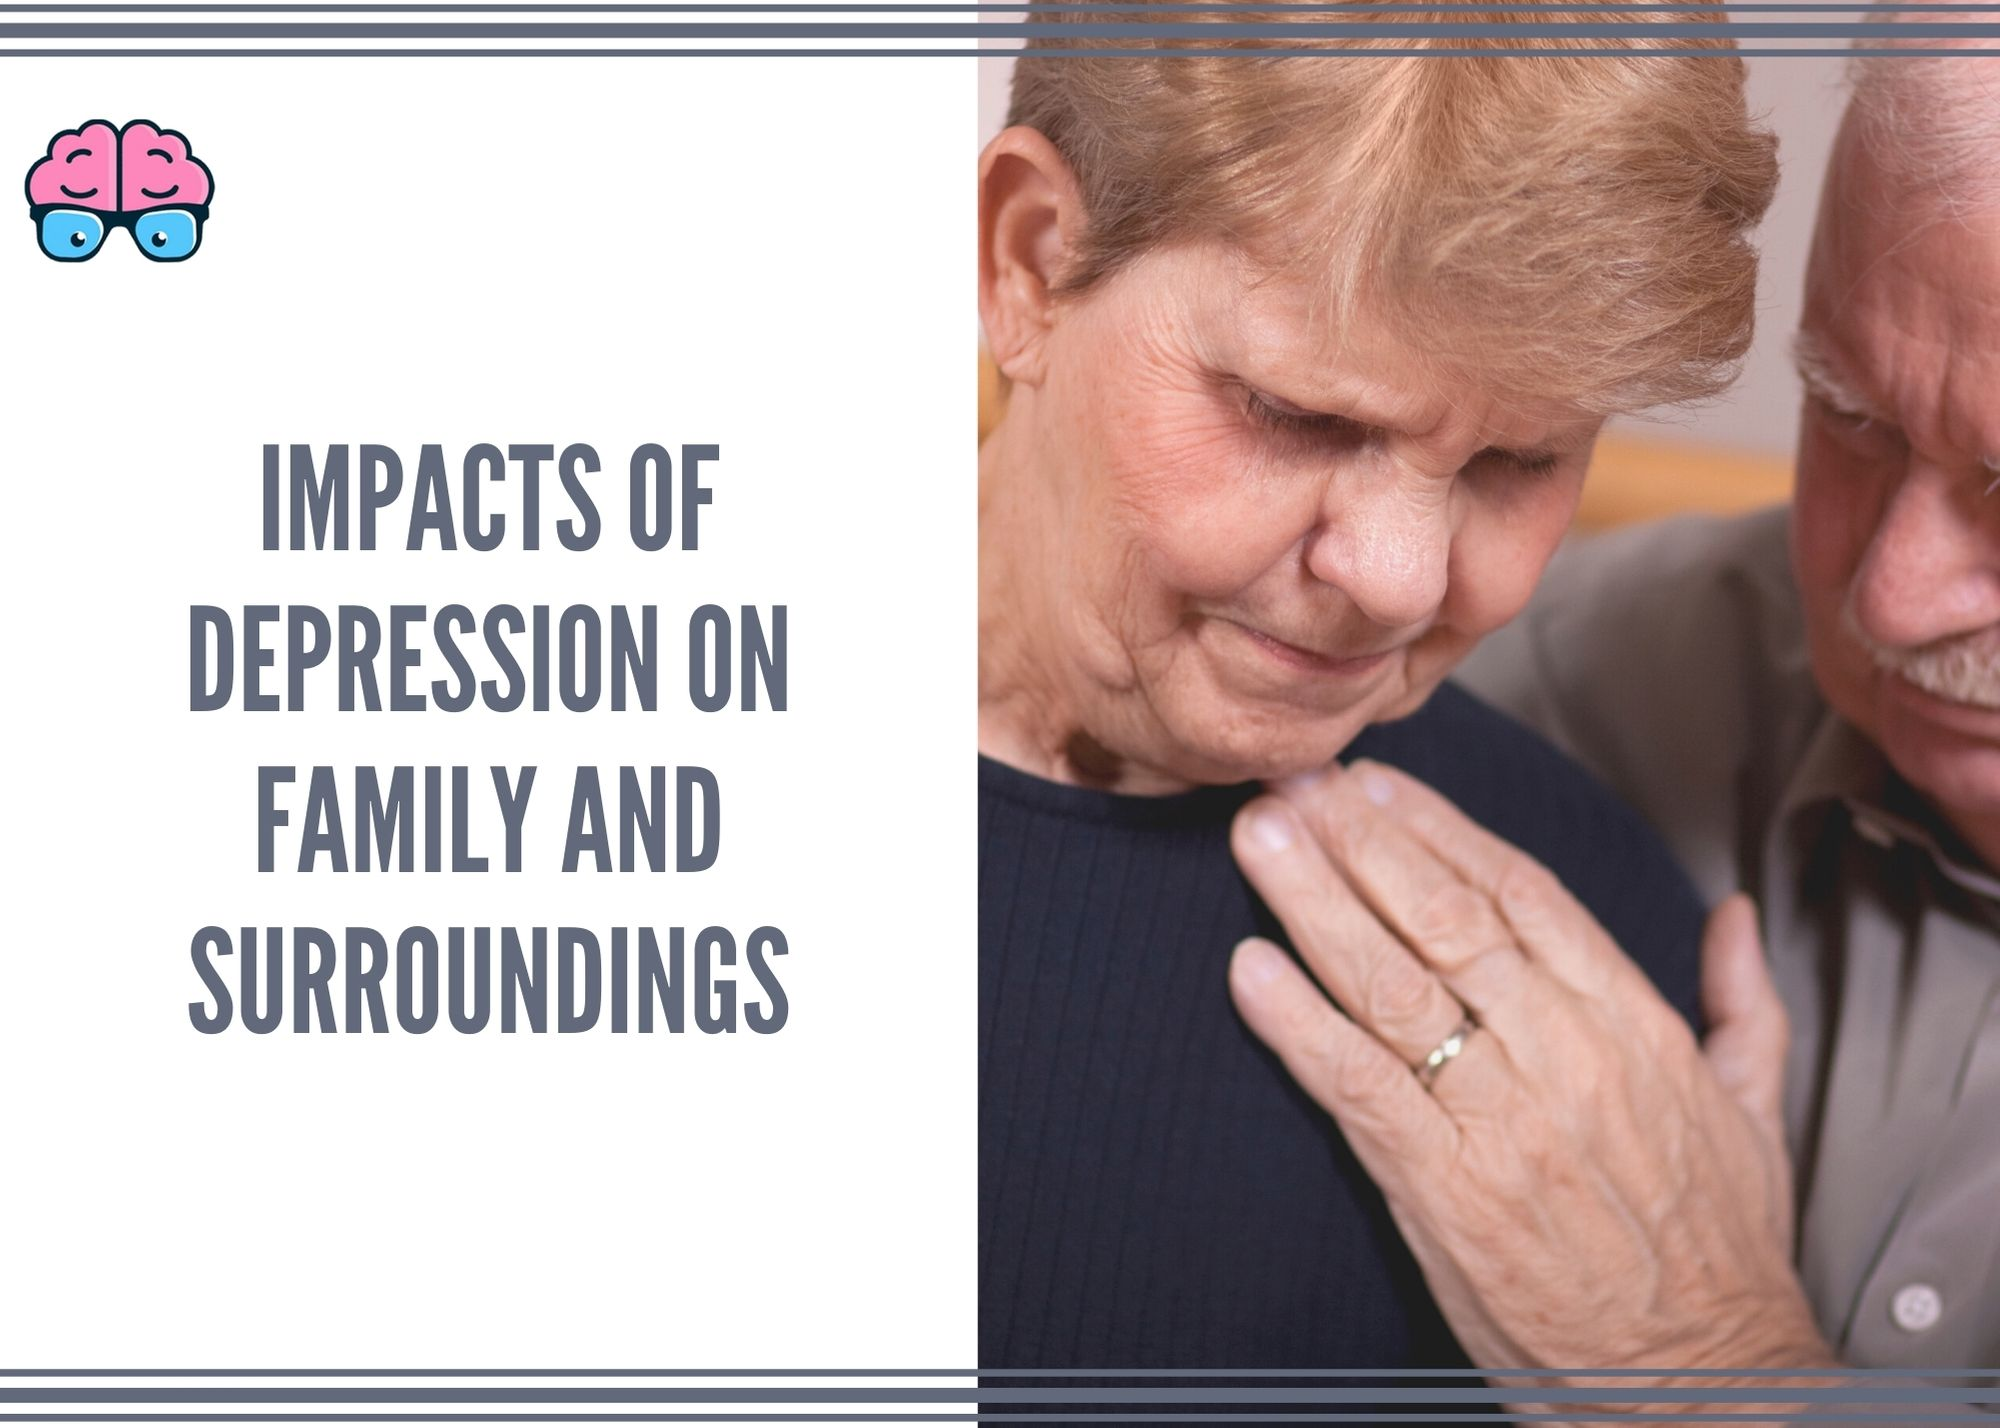 mpacts-of-Depression-on-Family-and-Surrounding